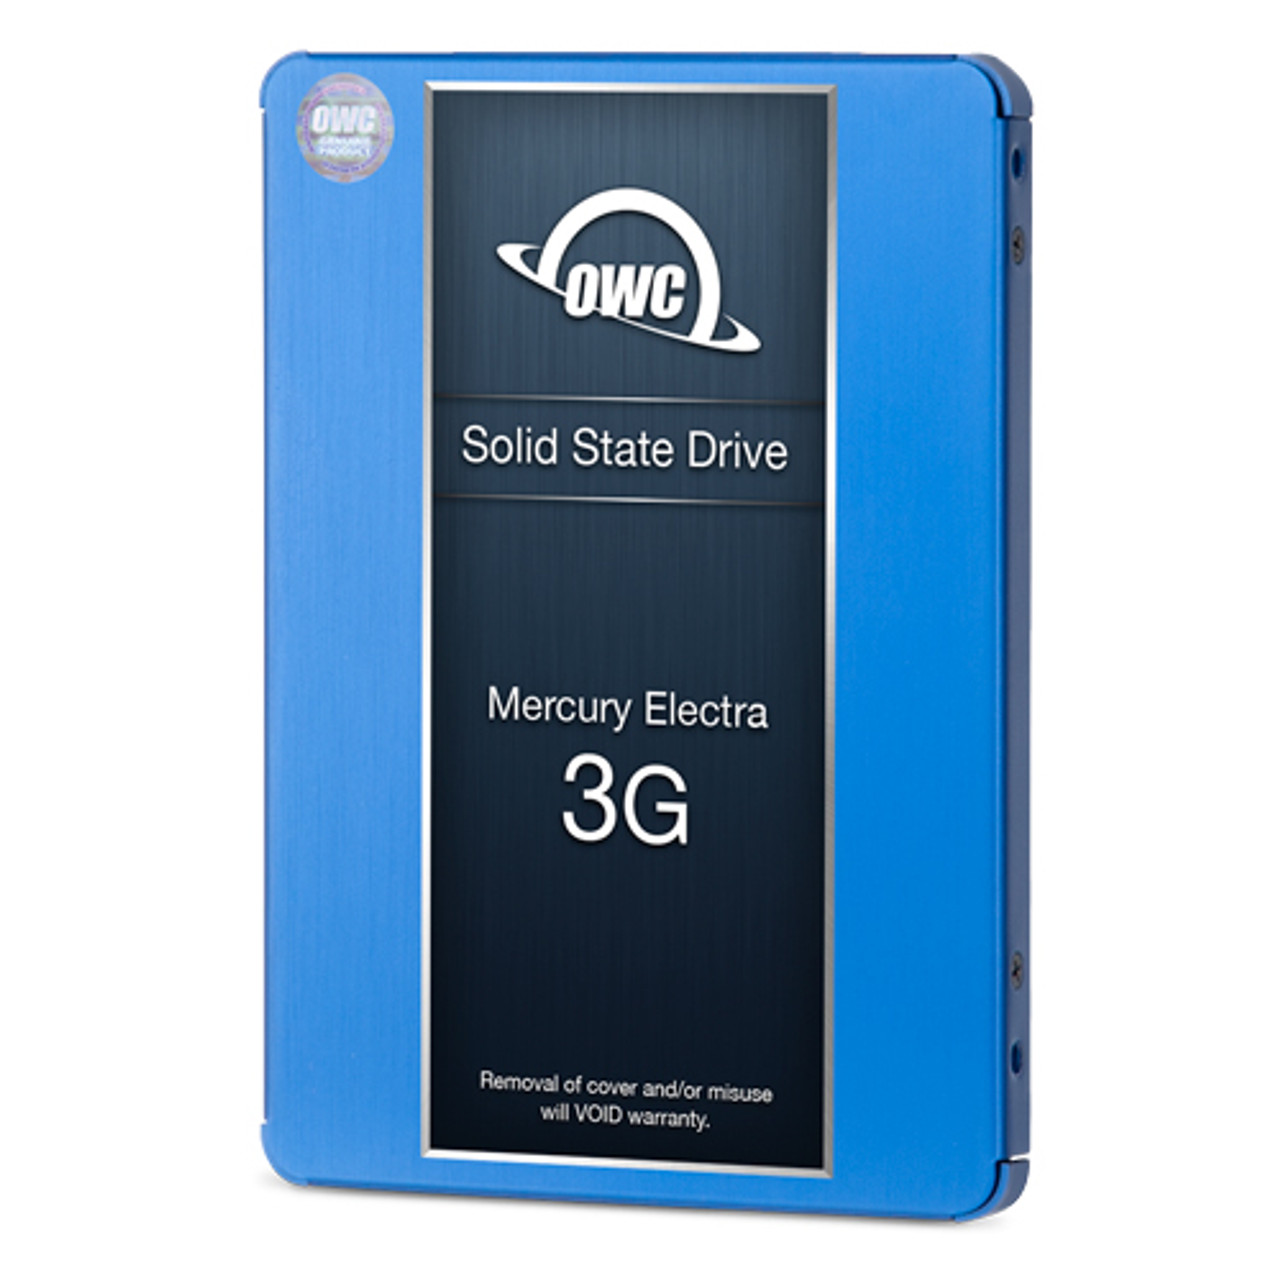 250GB OWC Mercury Electra 3G SSD and Data Doubler (DVD drive to SSD replacement) for select 27-inch 2010 - 2011 iMacs